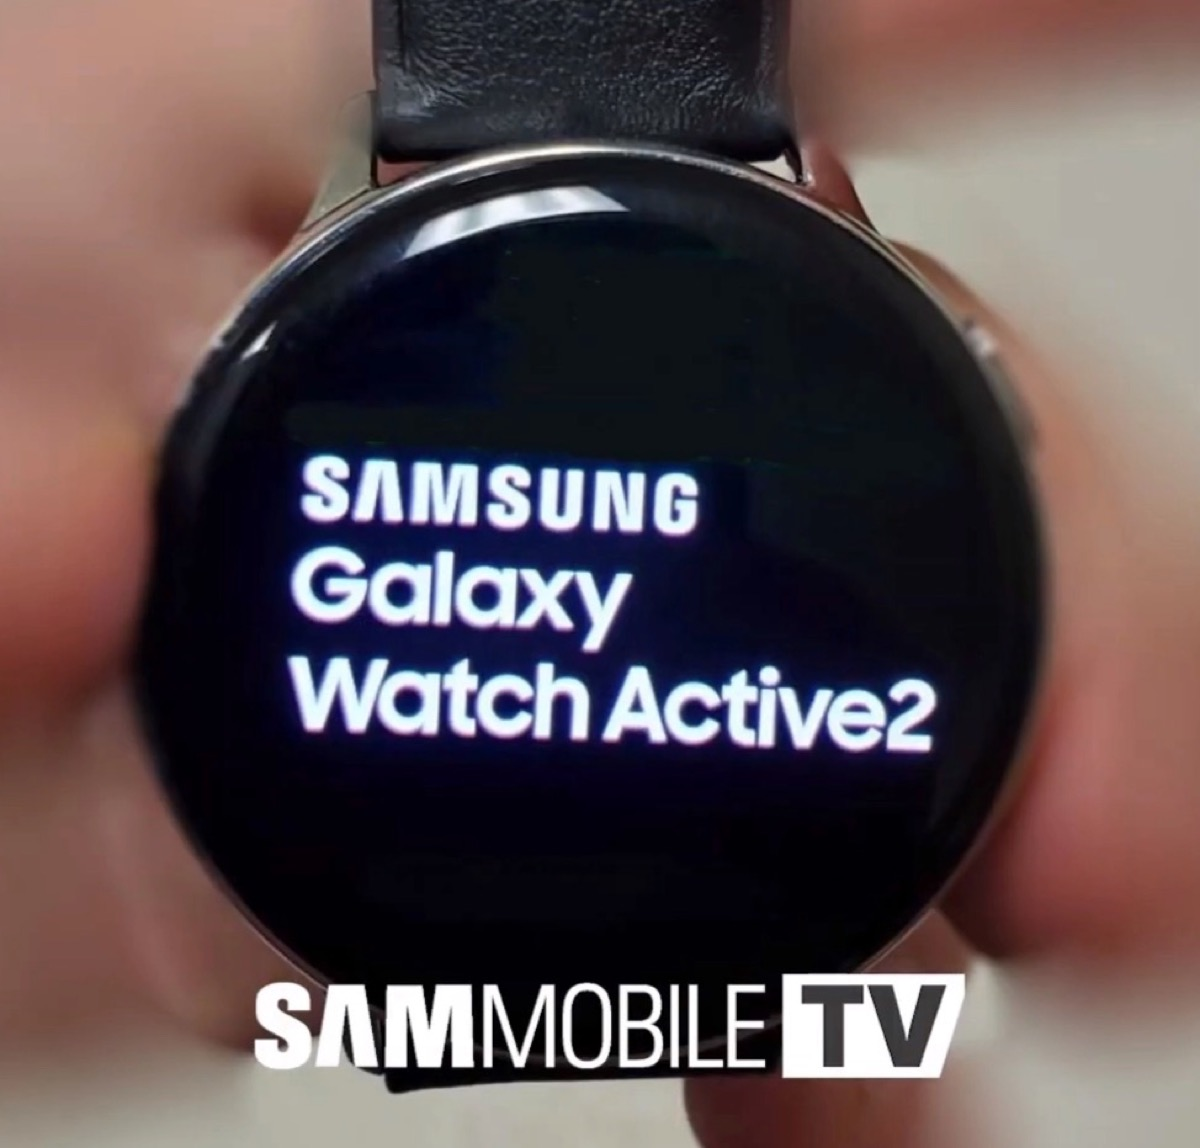 Samsung Galaxy Watch Active 2 Leak2